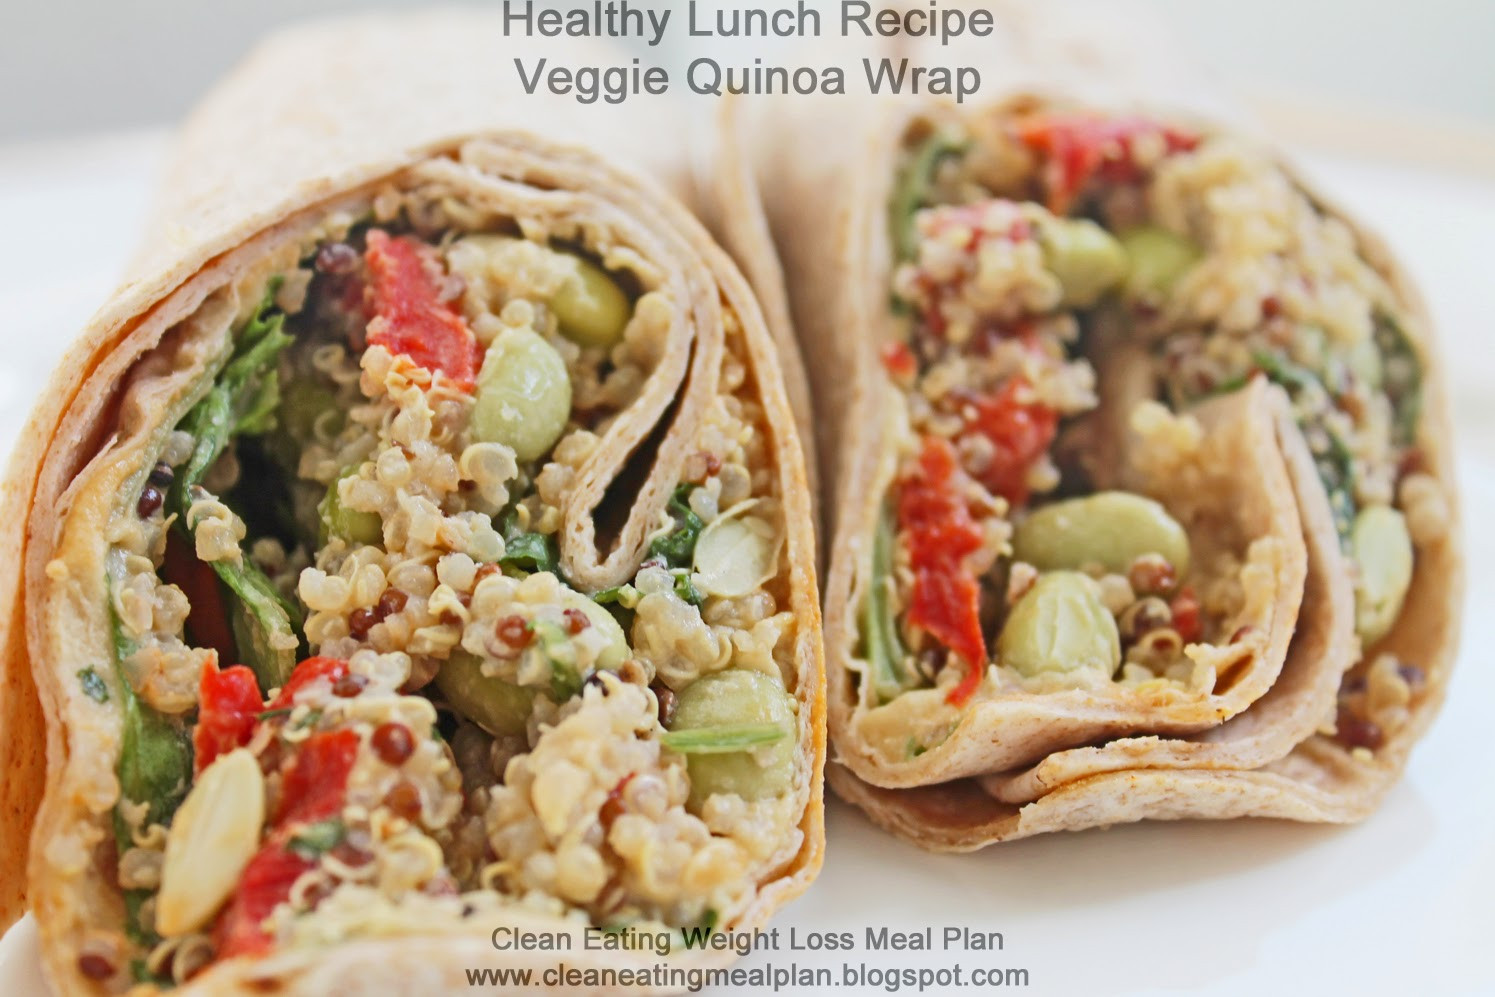 Healthy Meal Recipes For Weight Loss  Best Diet Plans Healthy Lunch Recipe for Weight Loss Meal